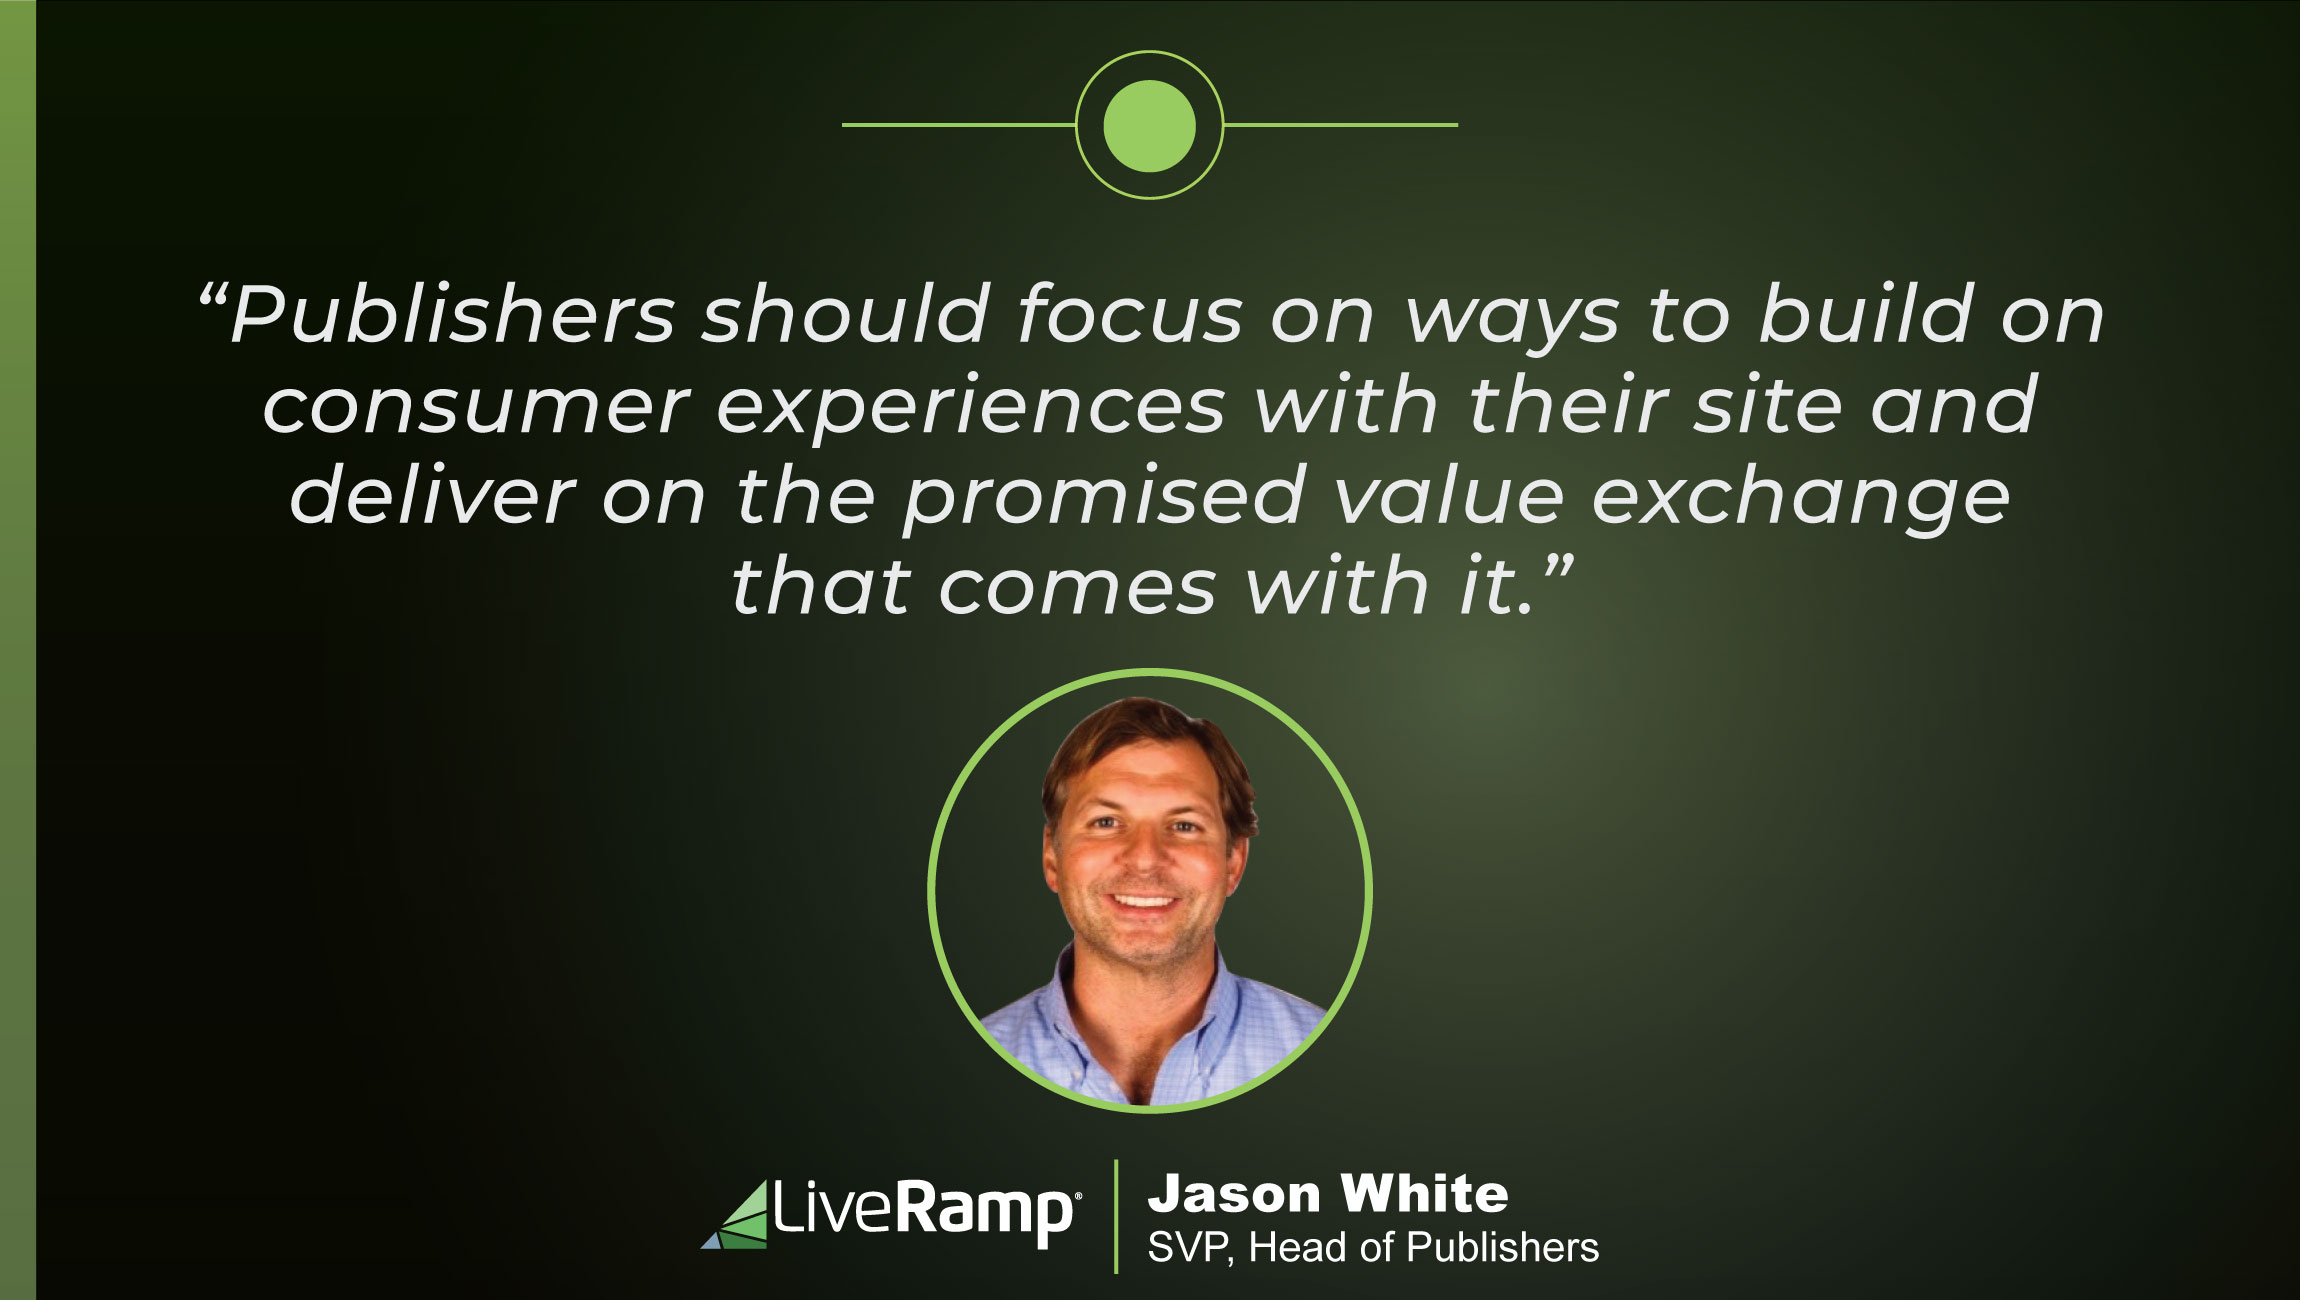 TechBytes with Jason White, SVP, Head of Publishers at LiveRamp